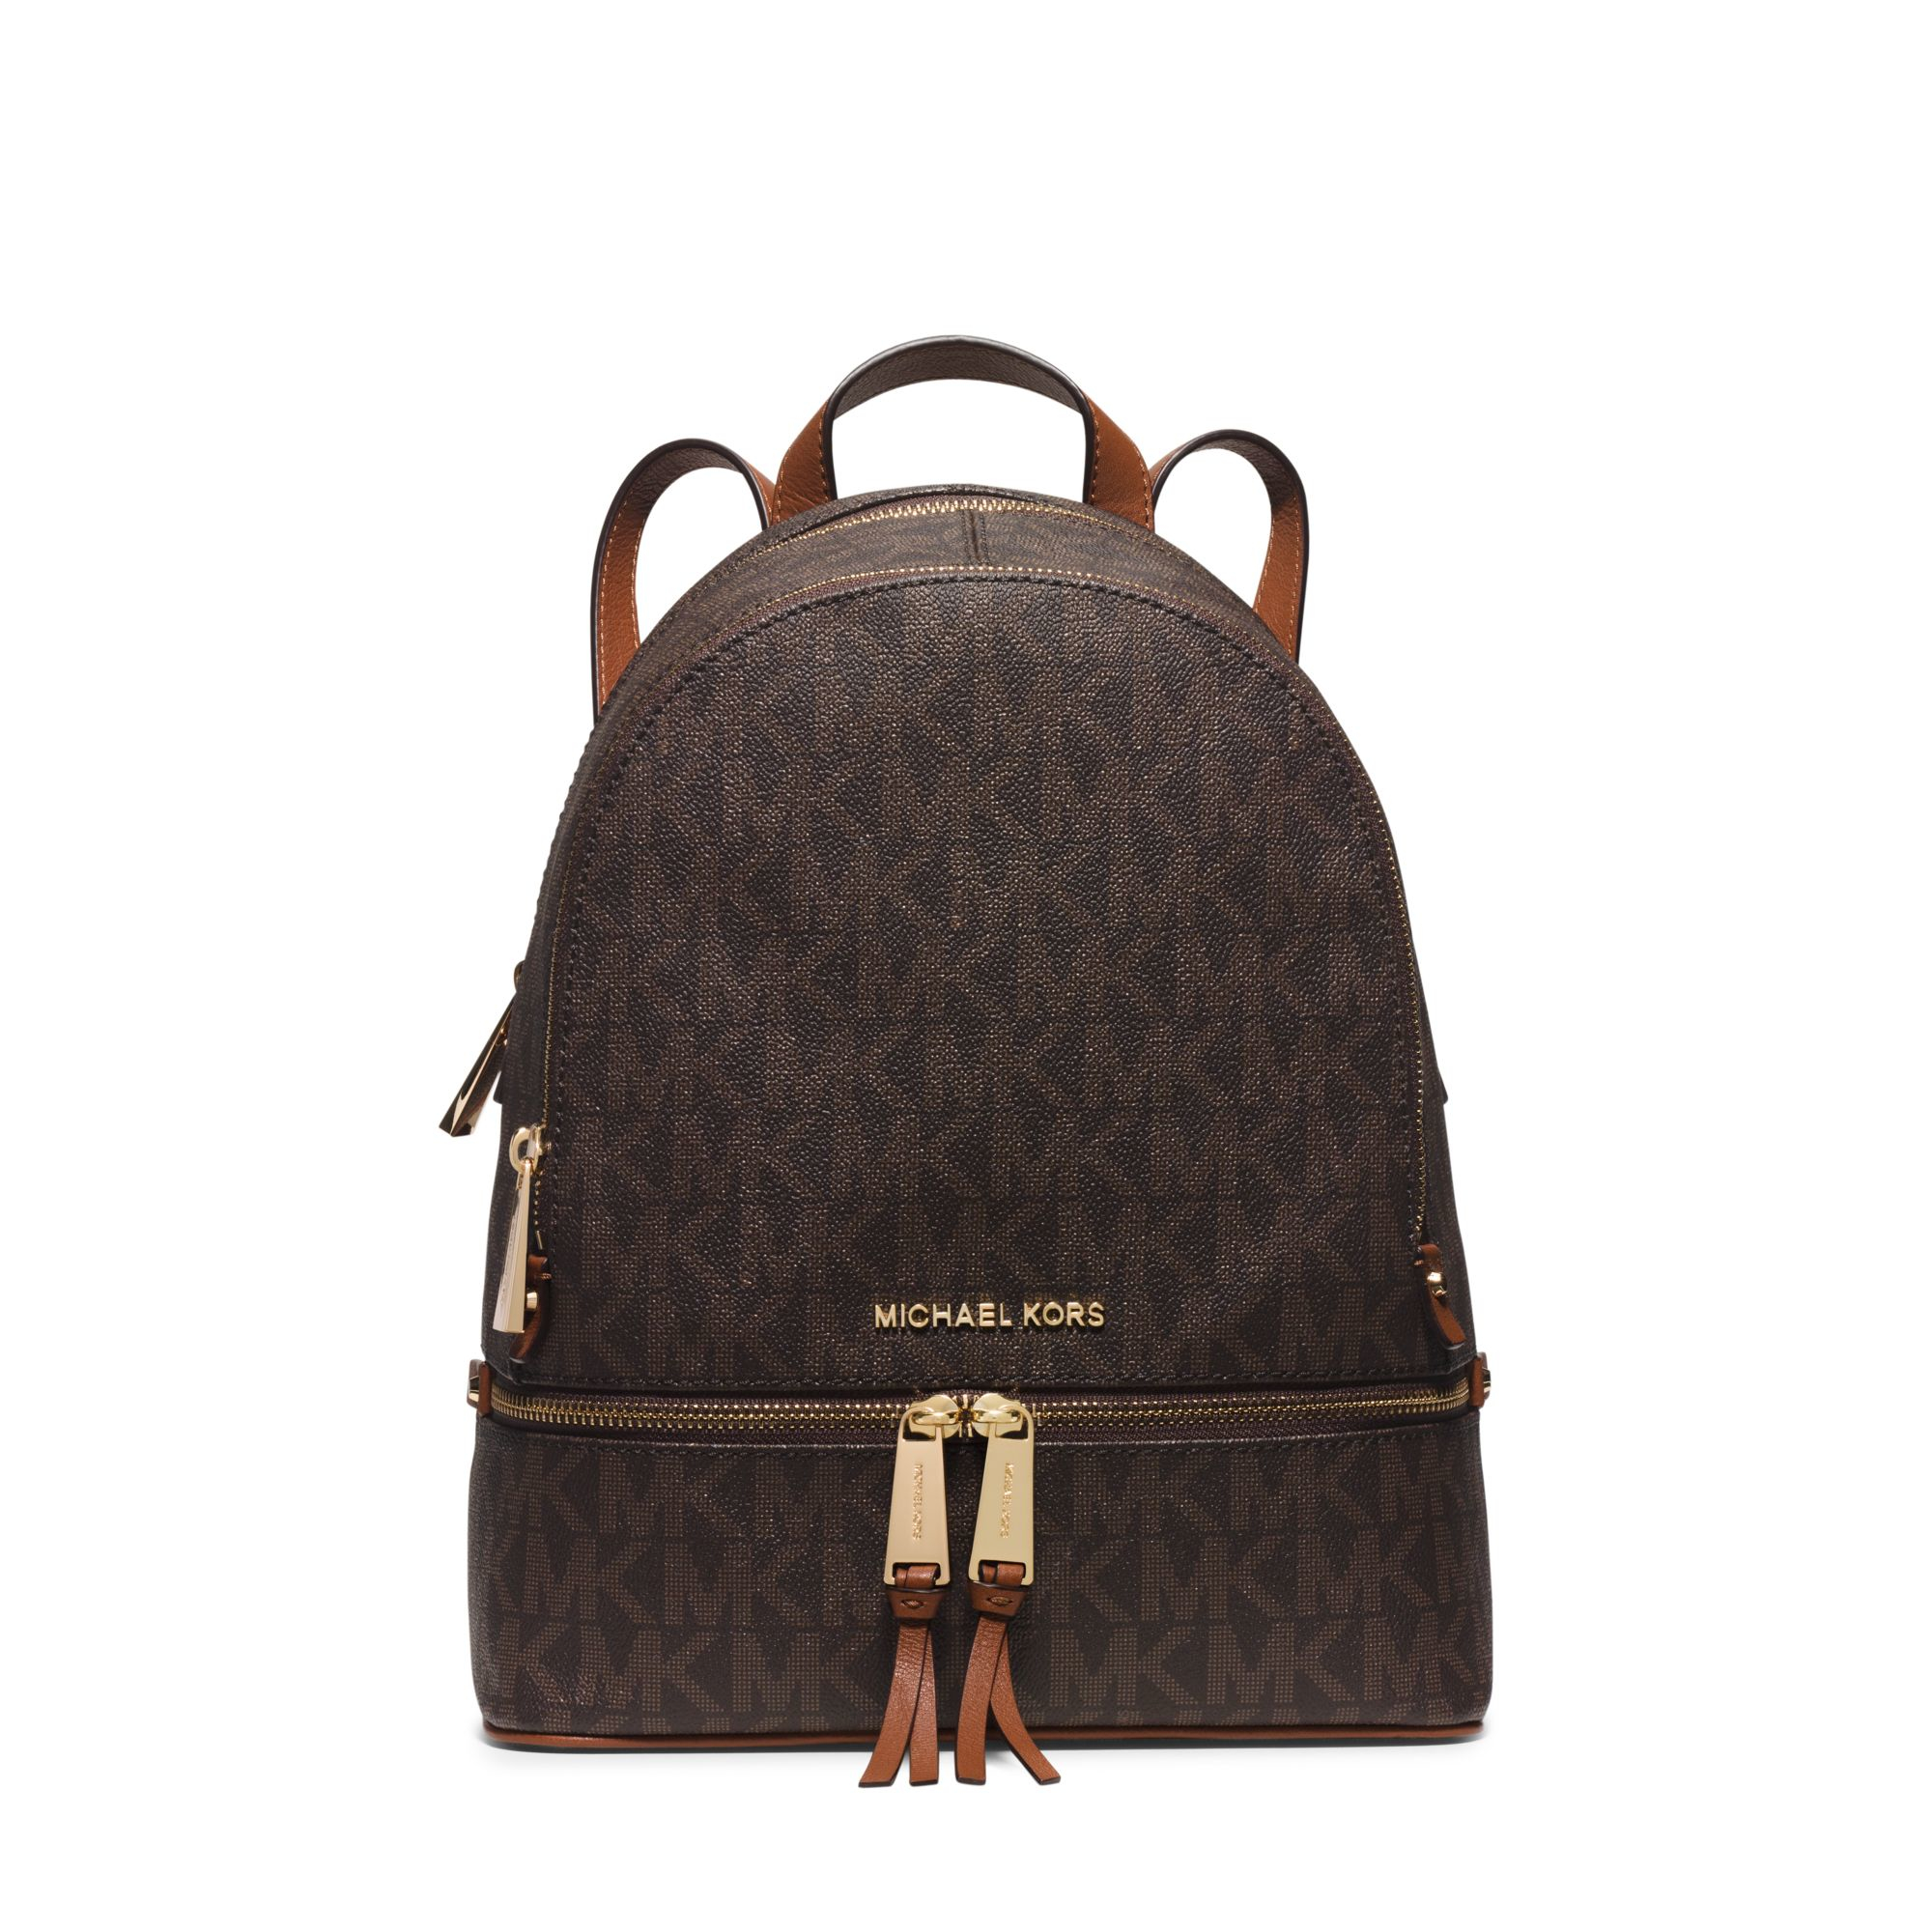 michael kors rhea small backpack in brown lyst. Black Bedroom Furniture Sets. Home Design Ideas